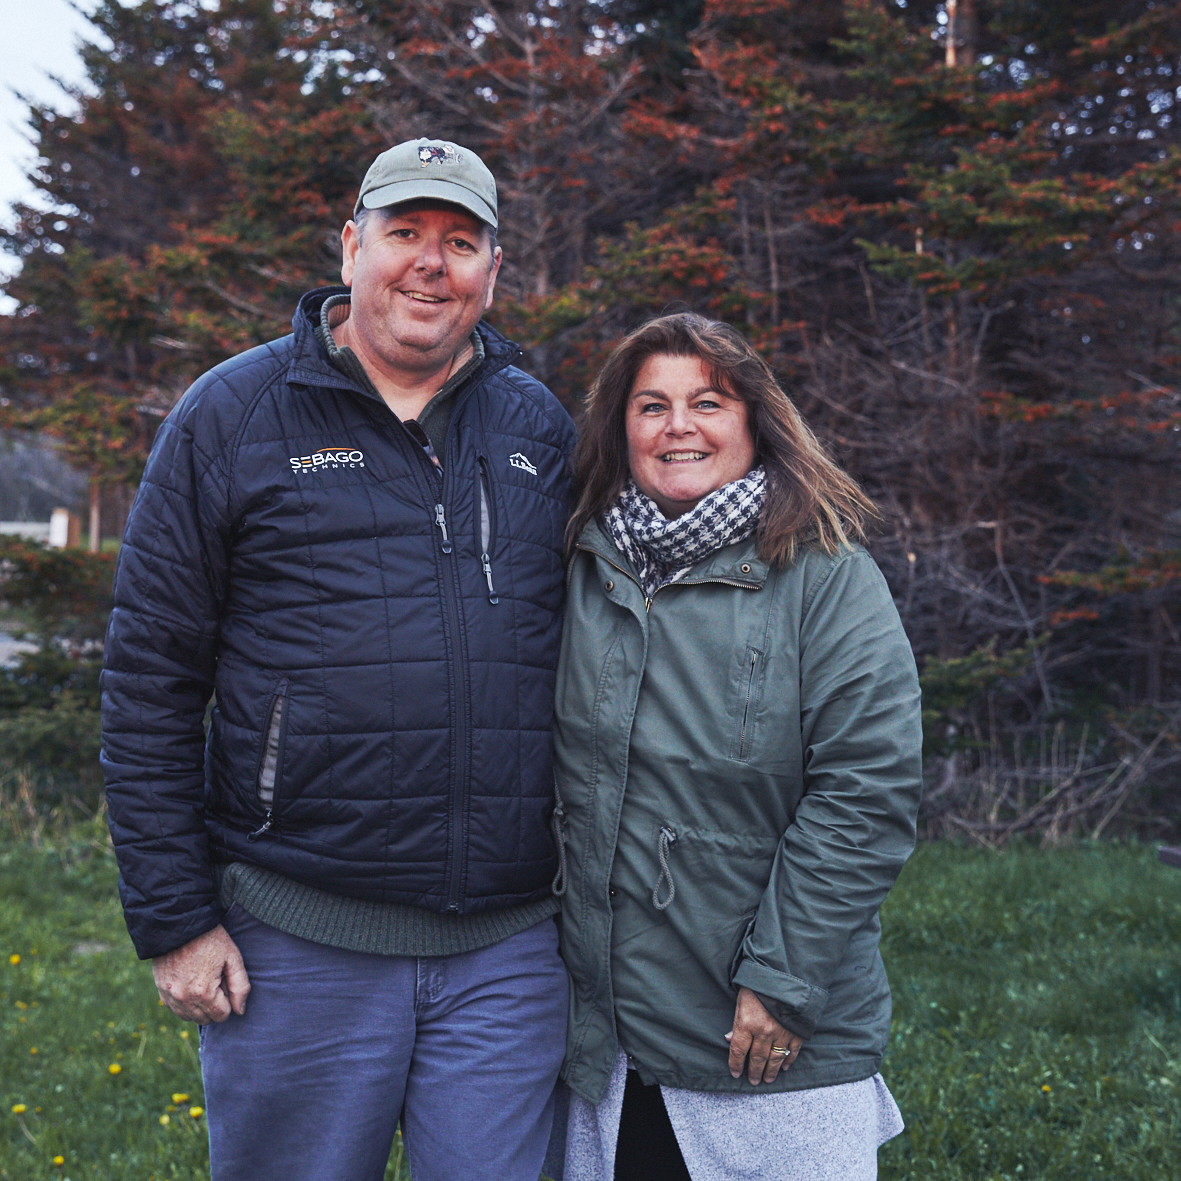 Candy & Matt - Gros Morne Nationalpark - campsite no. 5 (neighbours)You made our day! We are so excited to see your Maine… and Steven. ;-) Thank you so very much for the wonderful time we've spent and the precious list. See you soon in Portland.